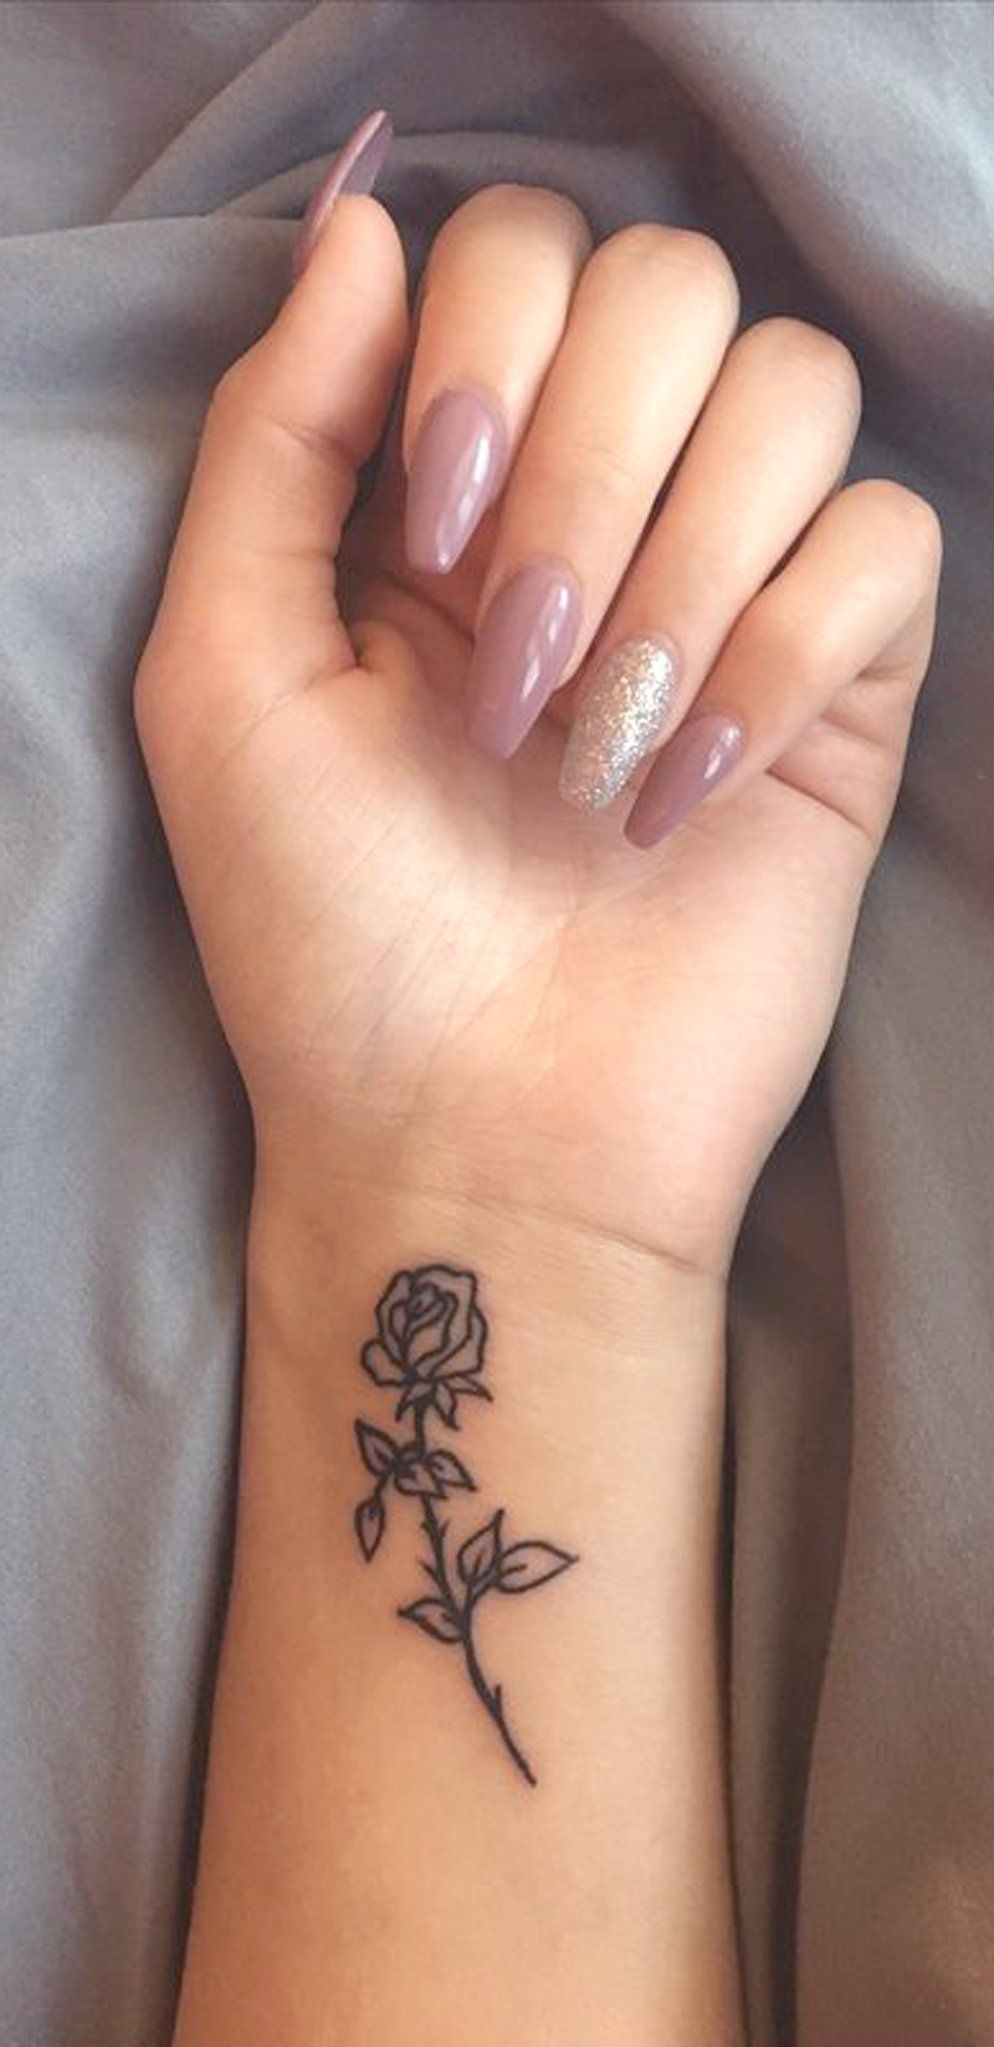 Small Rose Wrist Tattoo Ideas For Women Minimal Flower Ideas And Designs